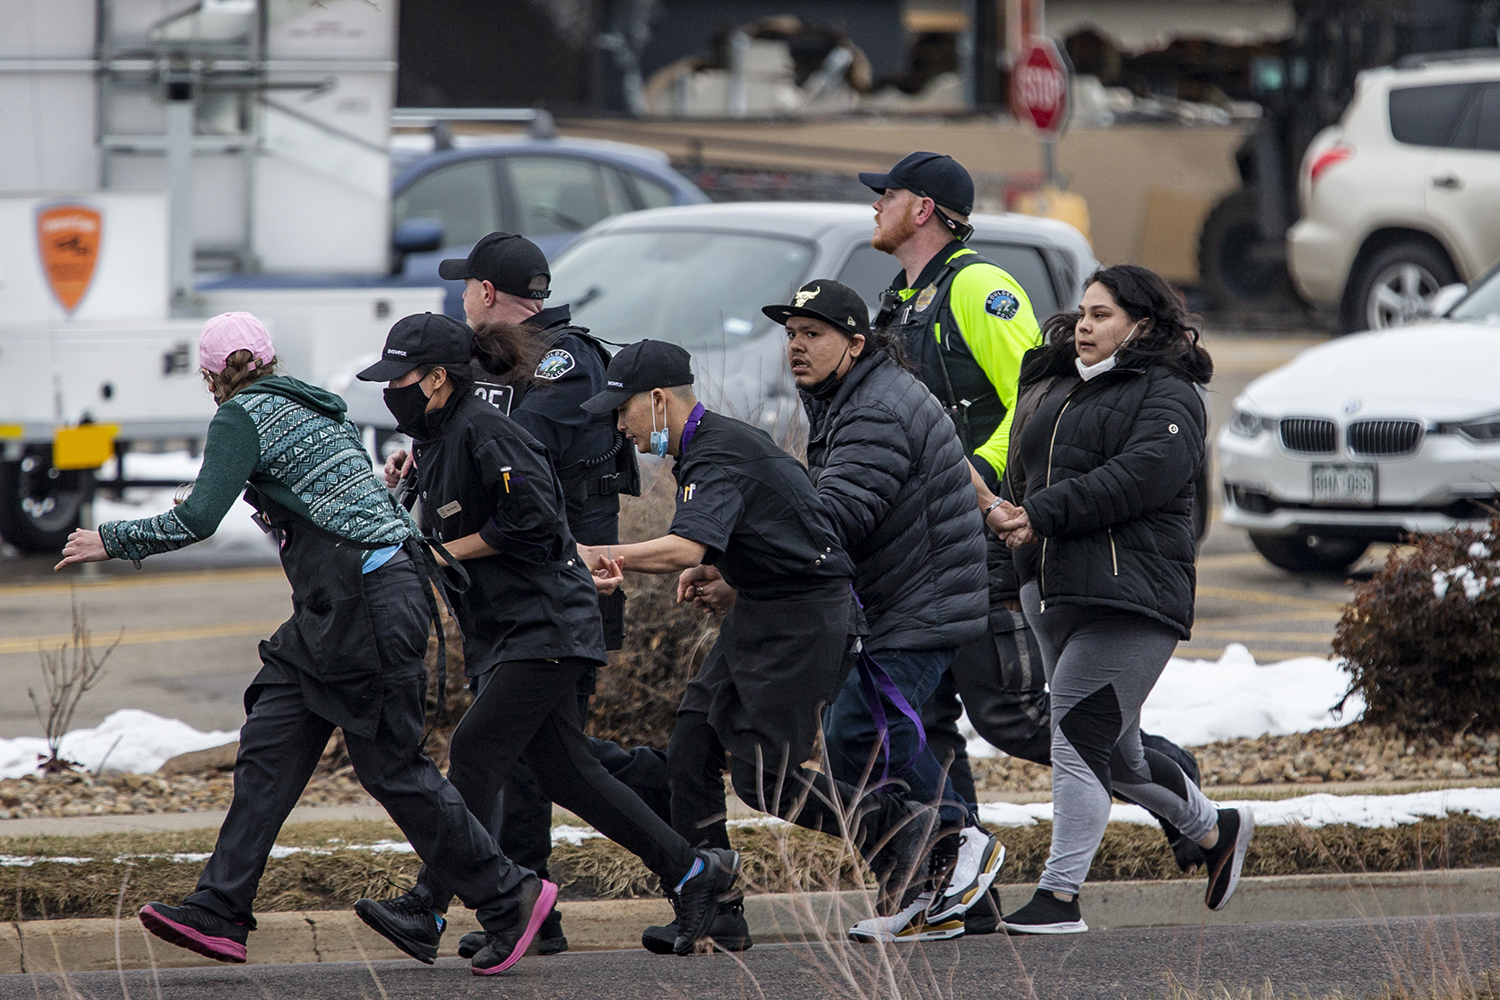 Shoppers are evacuated from a King Soopers grocery store in Boulder, Colorado, after a gunman opened fire March 22. Ten people, including a police officer, were killed. Chet Strange/Getty Images